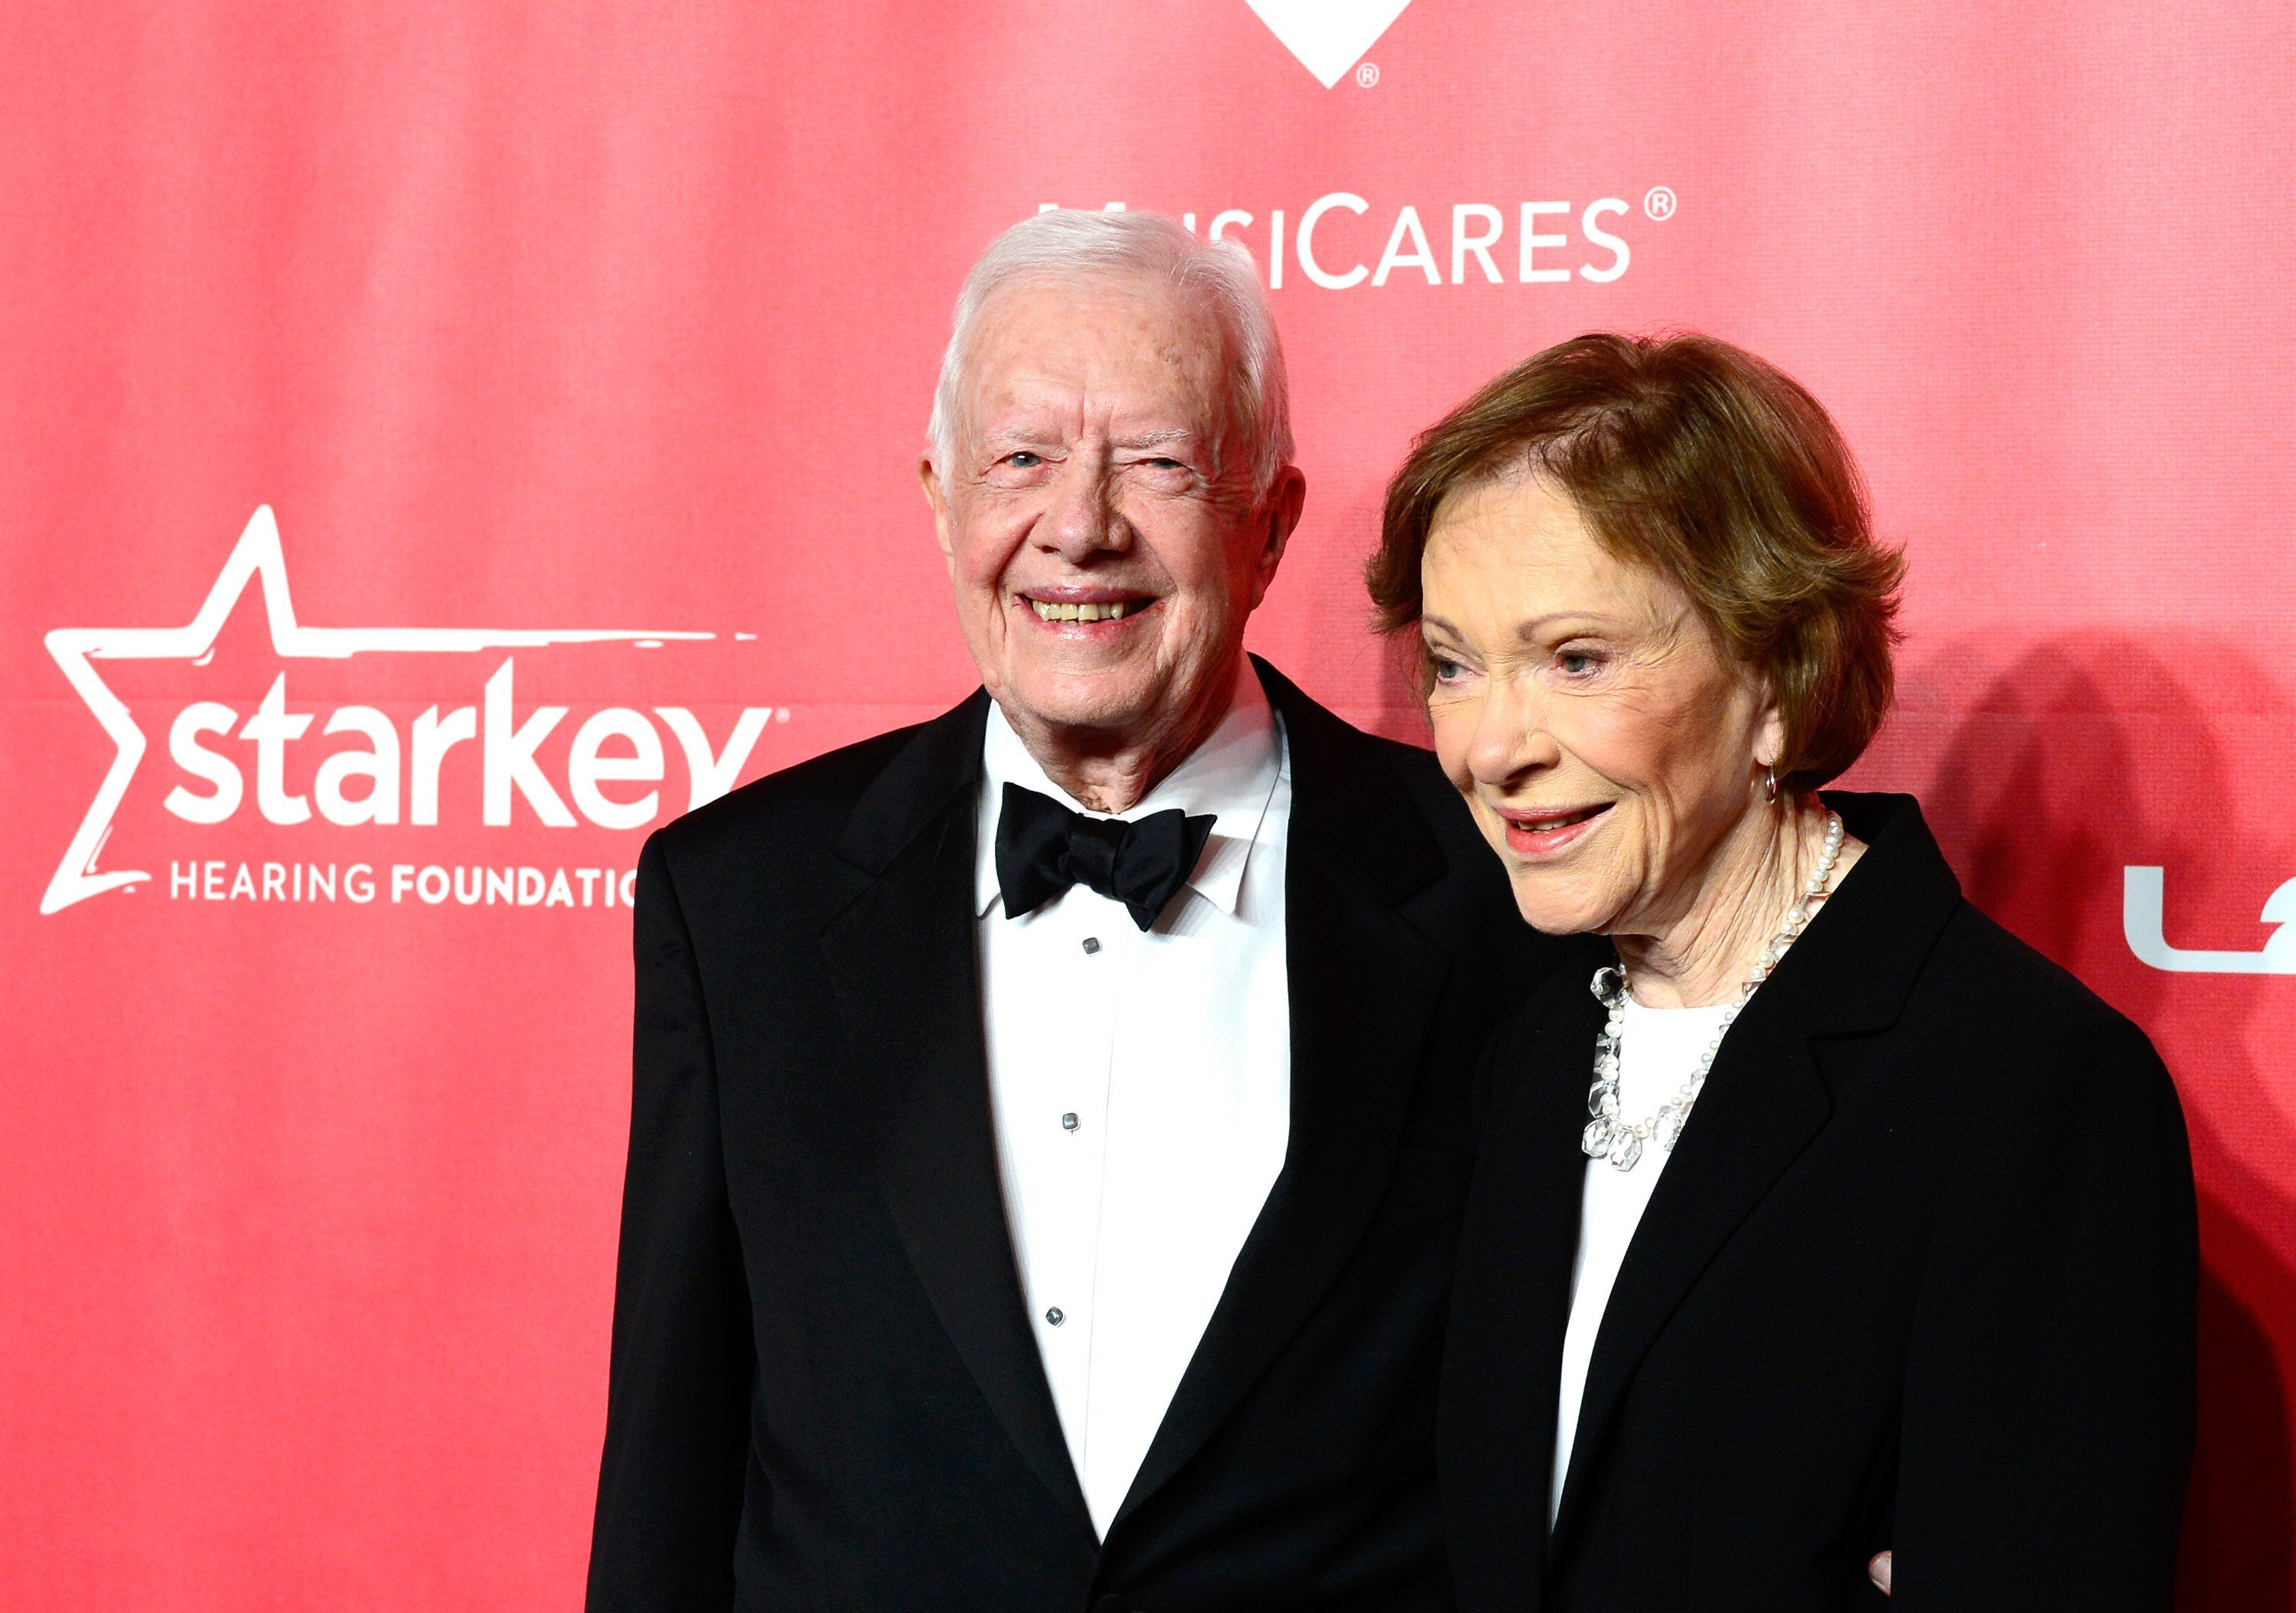 Former US President Jimmy Carter and former First Lady Rosalynn Carter at the 25th anniversary of MusiCares Person Of The Year Gala honoring Bob Dylan at the Los Angeles Convention Center on February 6, 2015 in California | Photo: Getty Images